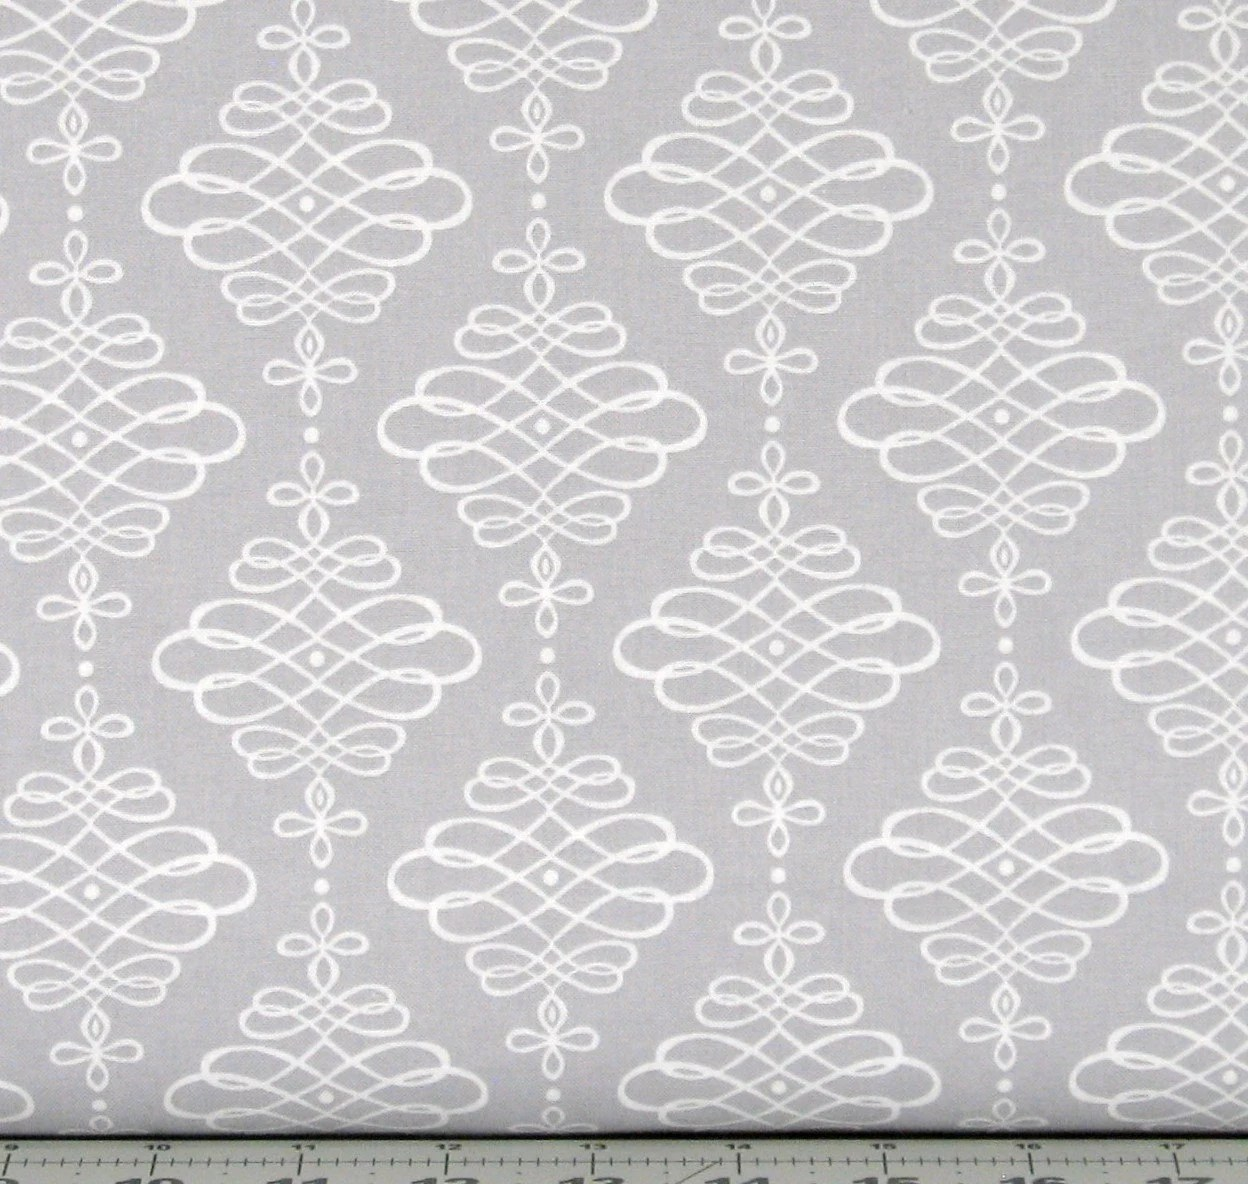 Gray and White Flourish Motif Cotton Quilt Fabric for by